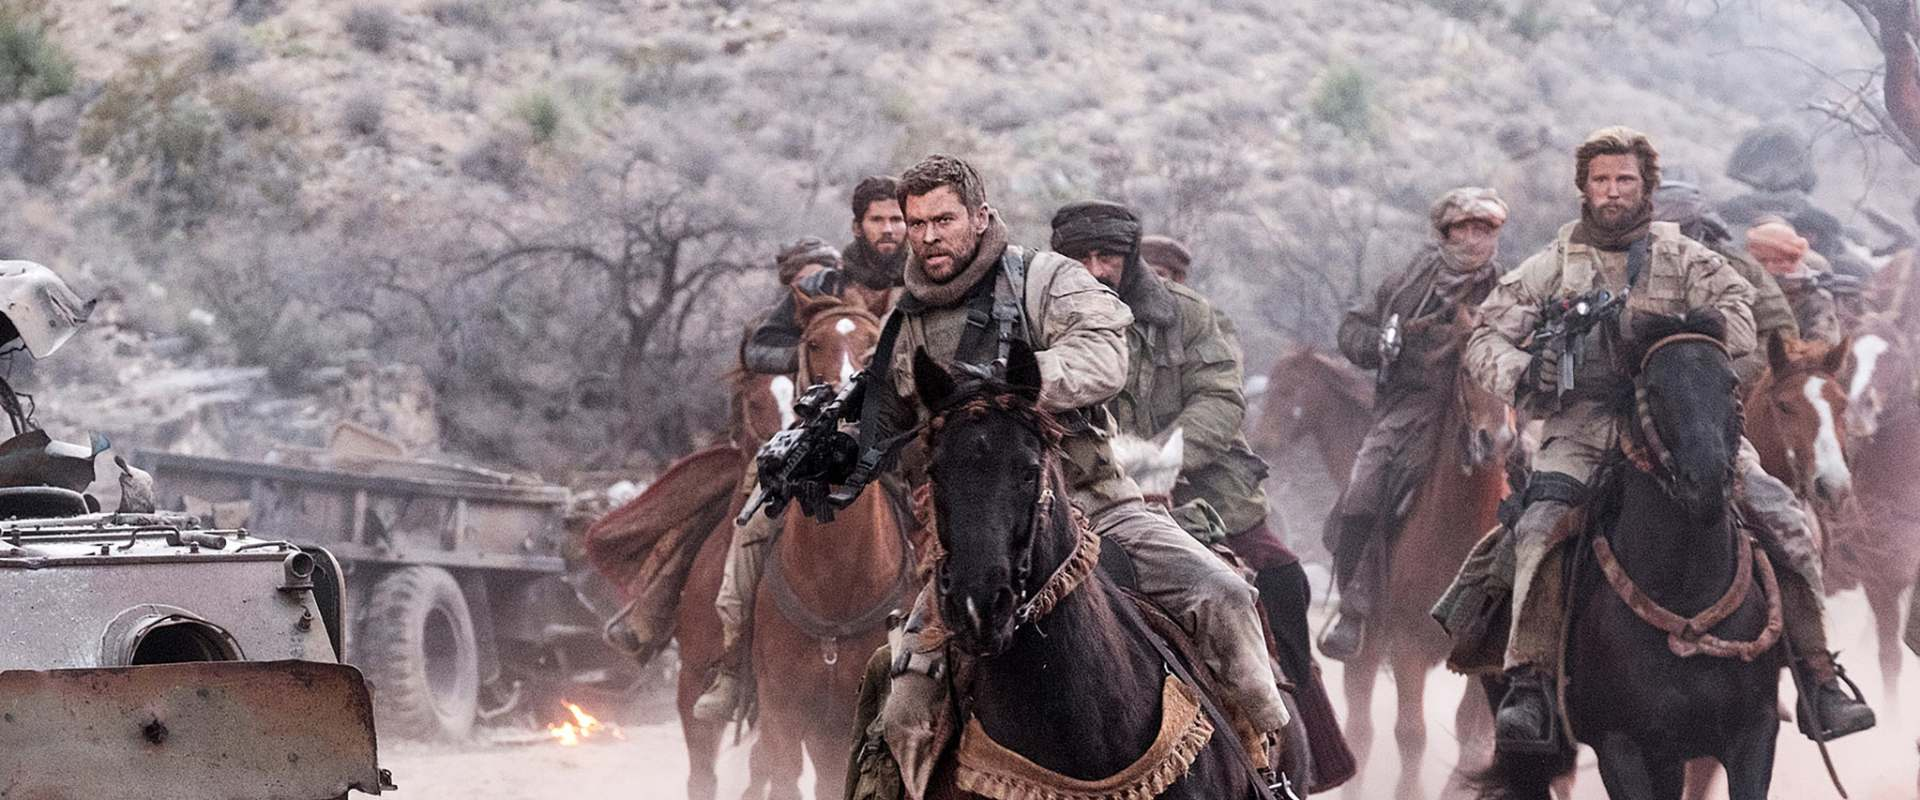 12 Strong background 2